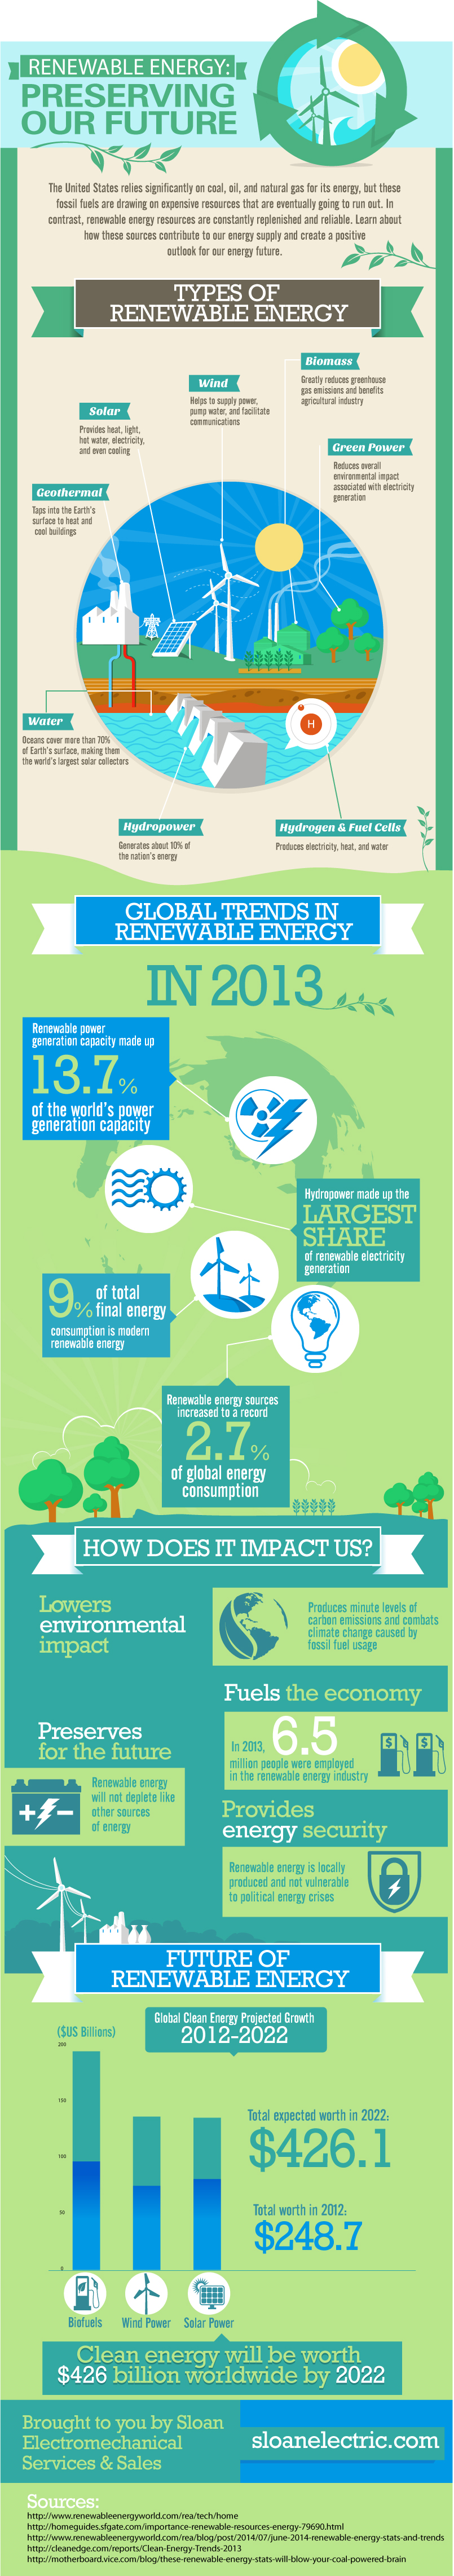 1408_graphic-sloan-electric-overview-of-renewable-energy